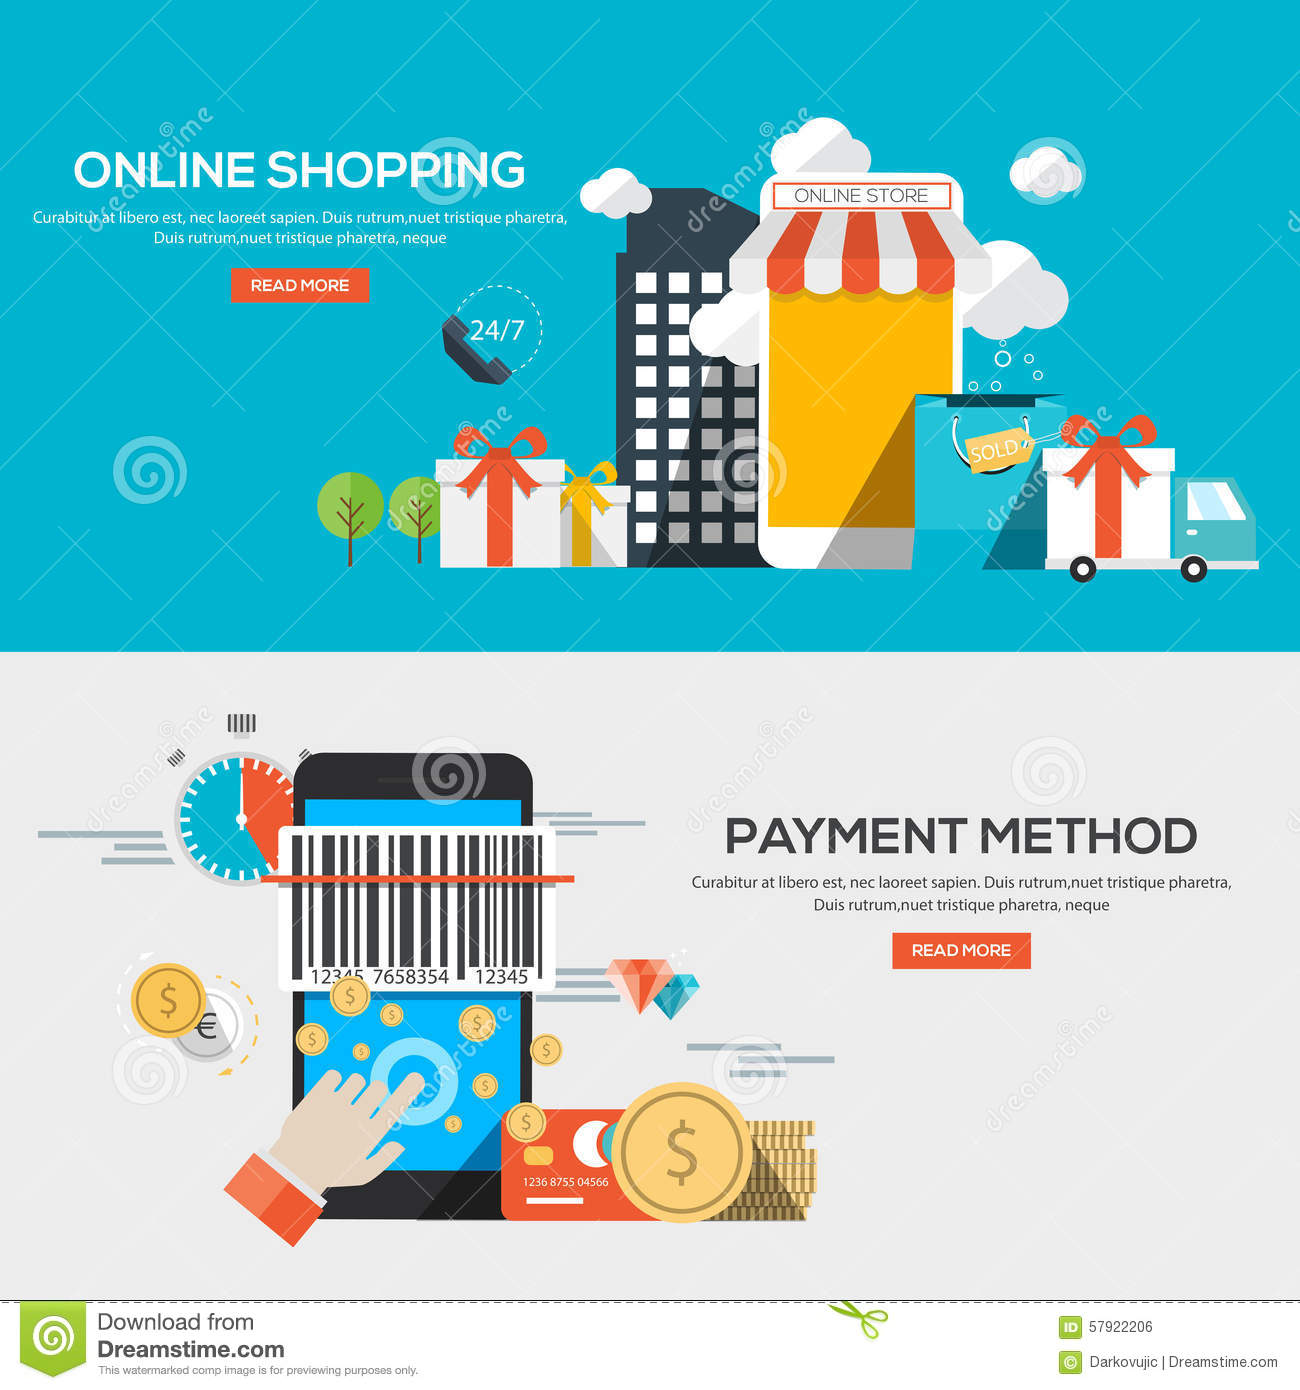 Online Shopping Mode Of Payment Flat Design Illustration Concepts Stock Vector Image